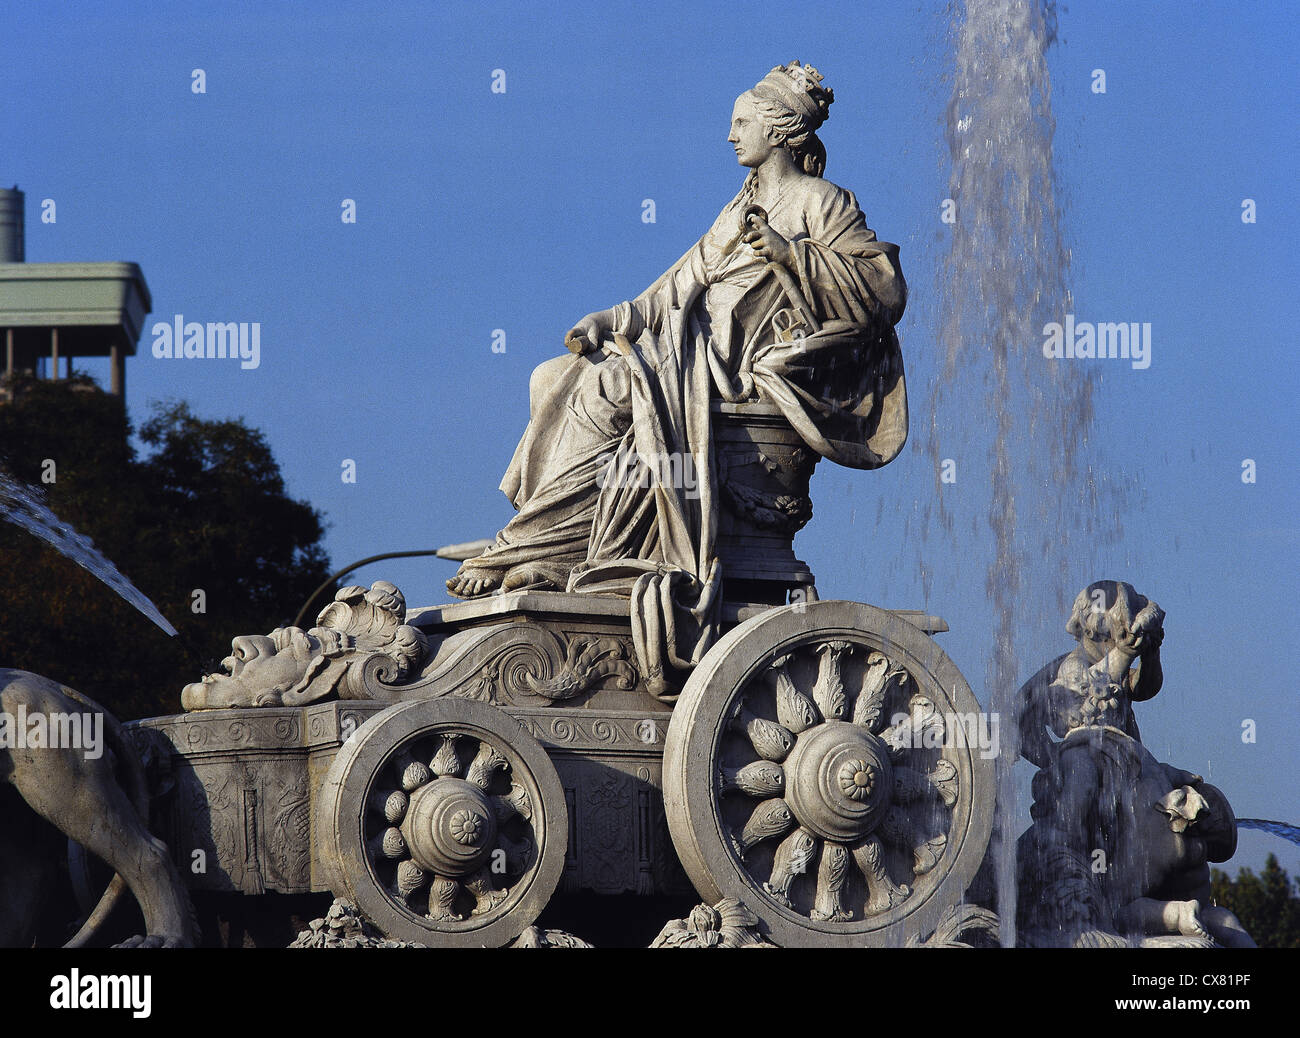 Fountain of Cibeles by Francisco Gutierrez (1727-1782) (goddess and chariot). Cybele in her chariot drawn by lions. - Stock Image